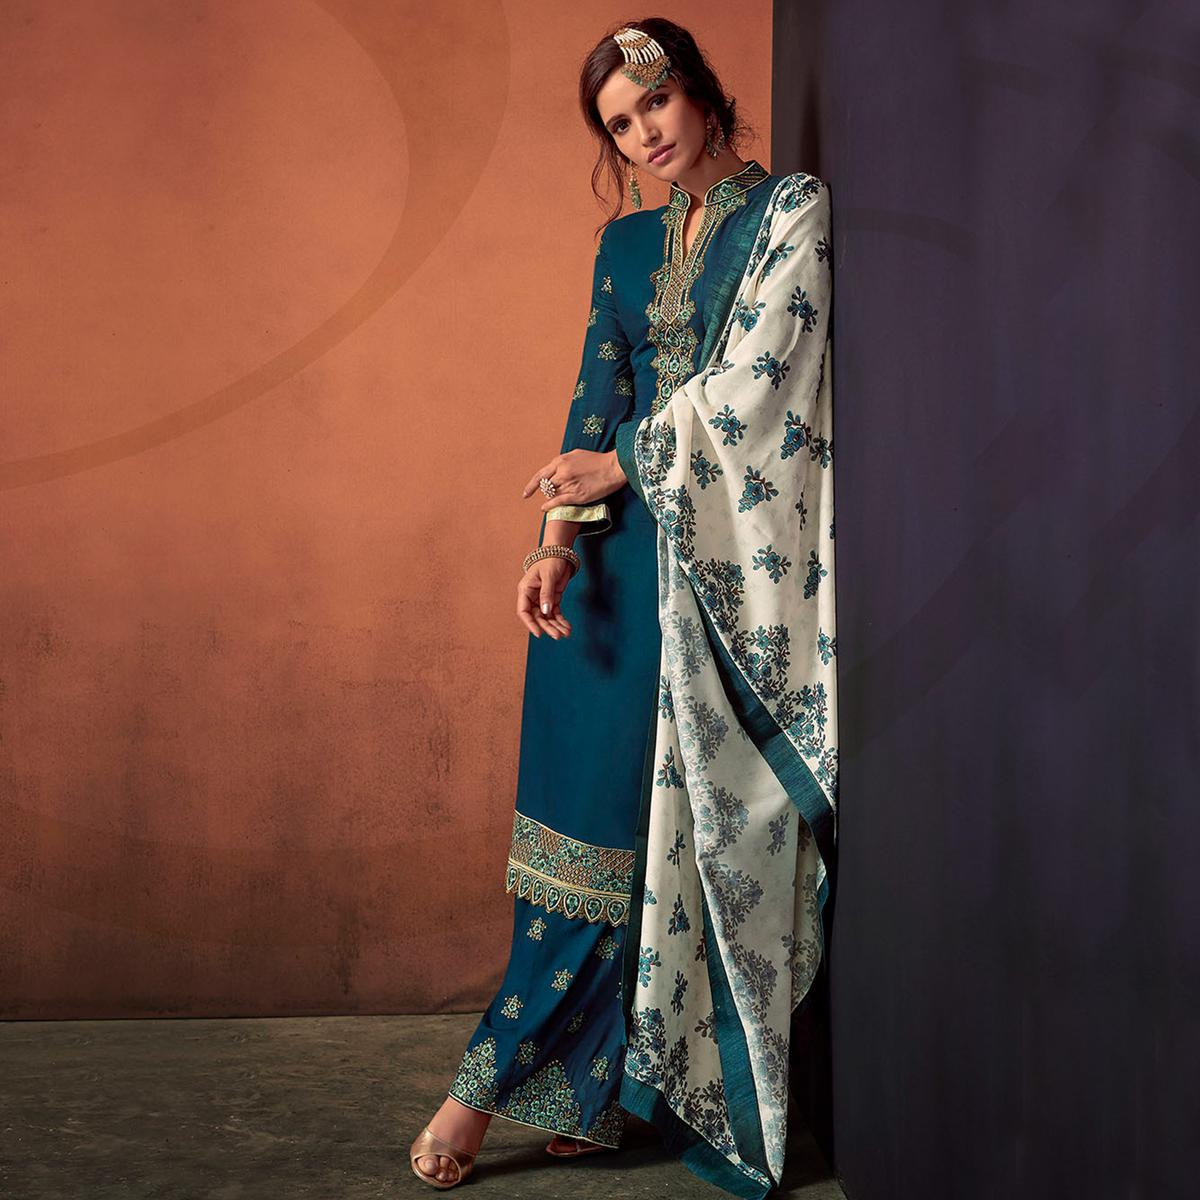 Hypnotic Teal Blue Colored Party Wear Embroidered Cotton Palazzo Suit